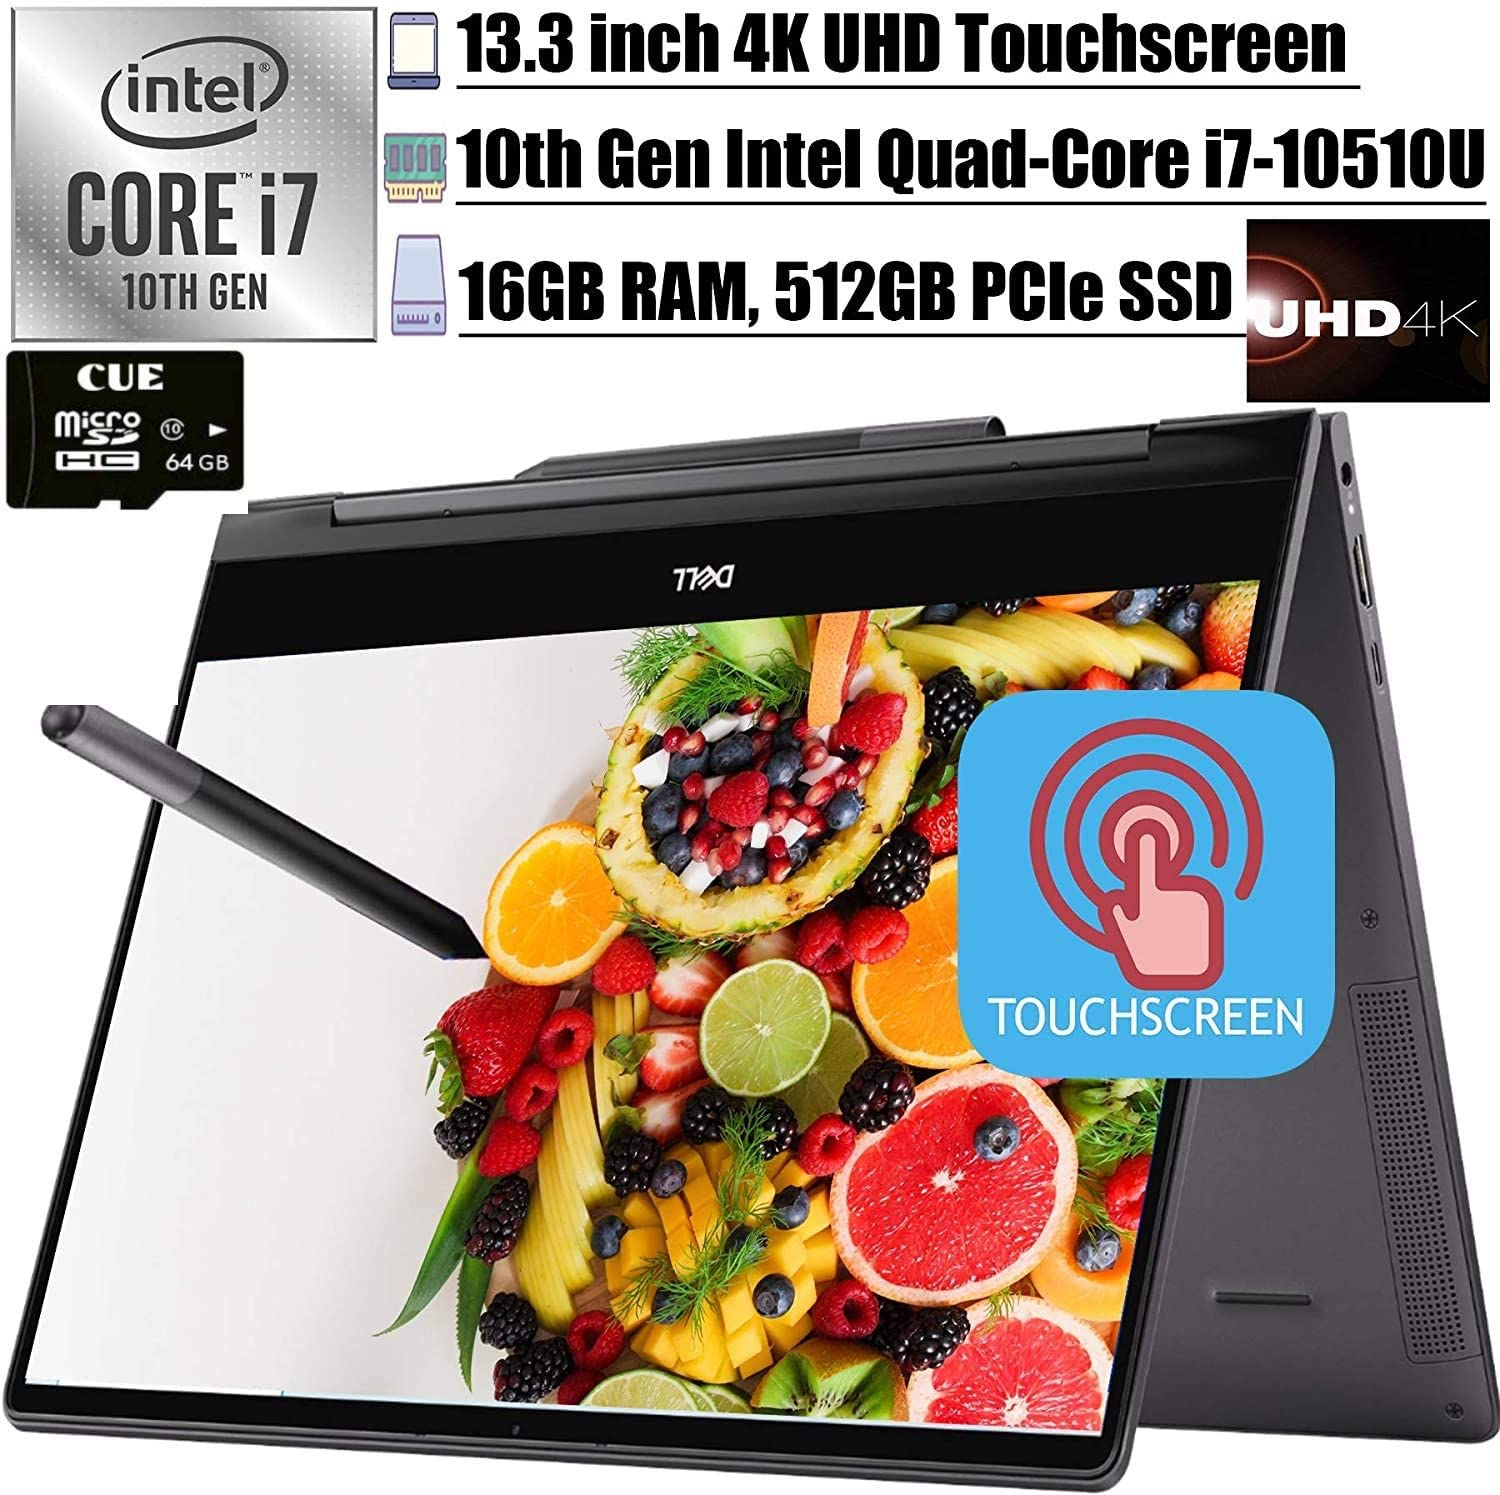 2020 Latest Dell Inspiron 13 7000 2-in-1 Laptop